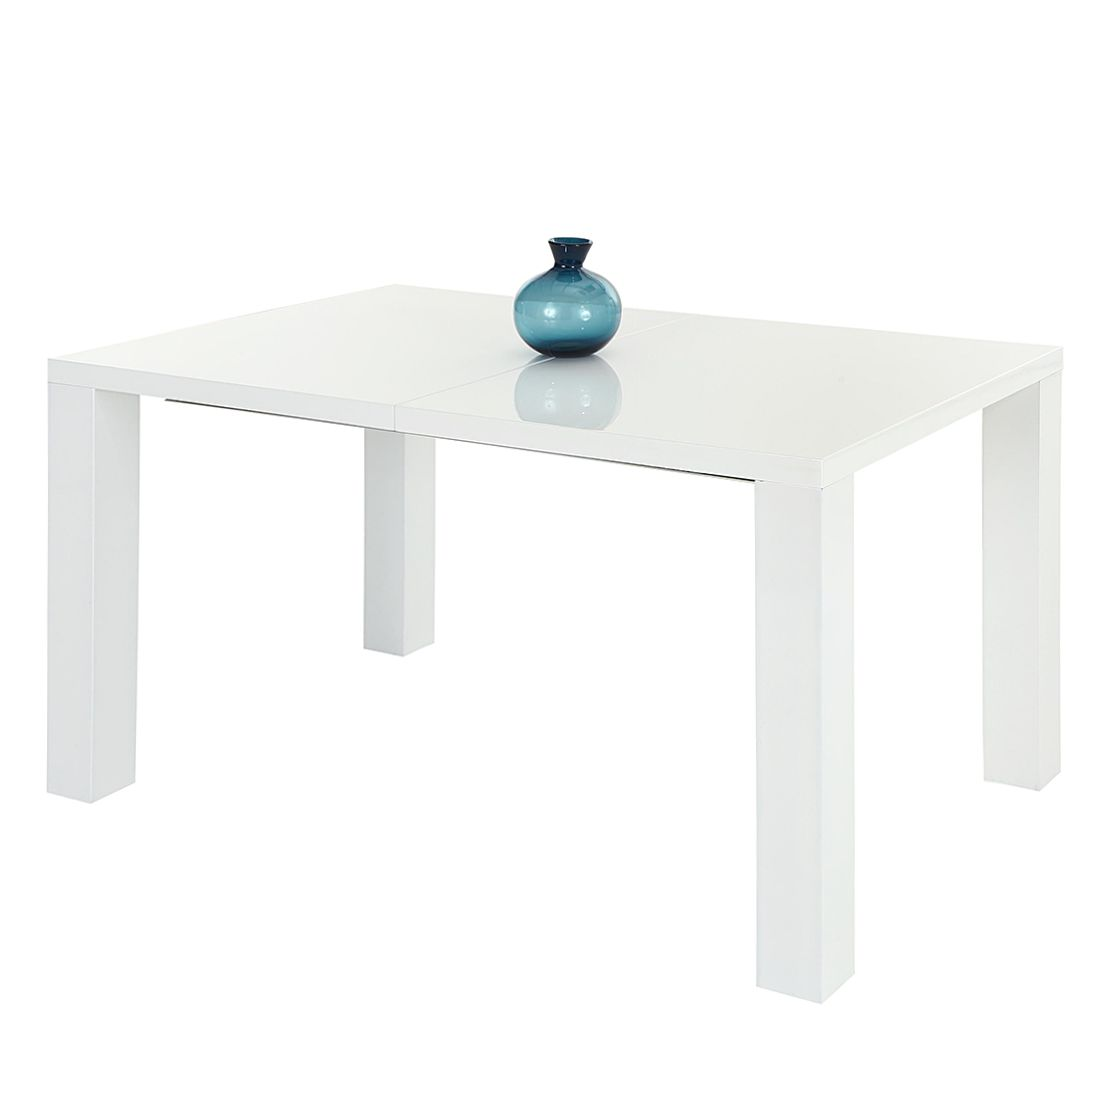 Table de salle à manger Jolina (avec rallonge) - Blanc brillant - 160 / 200 x 90 cm, Home Design